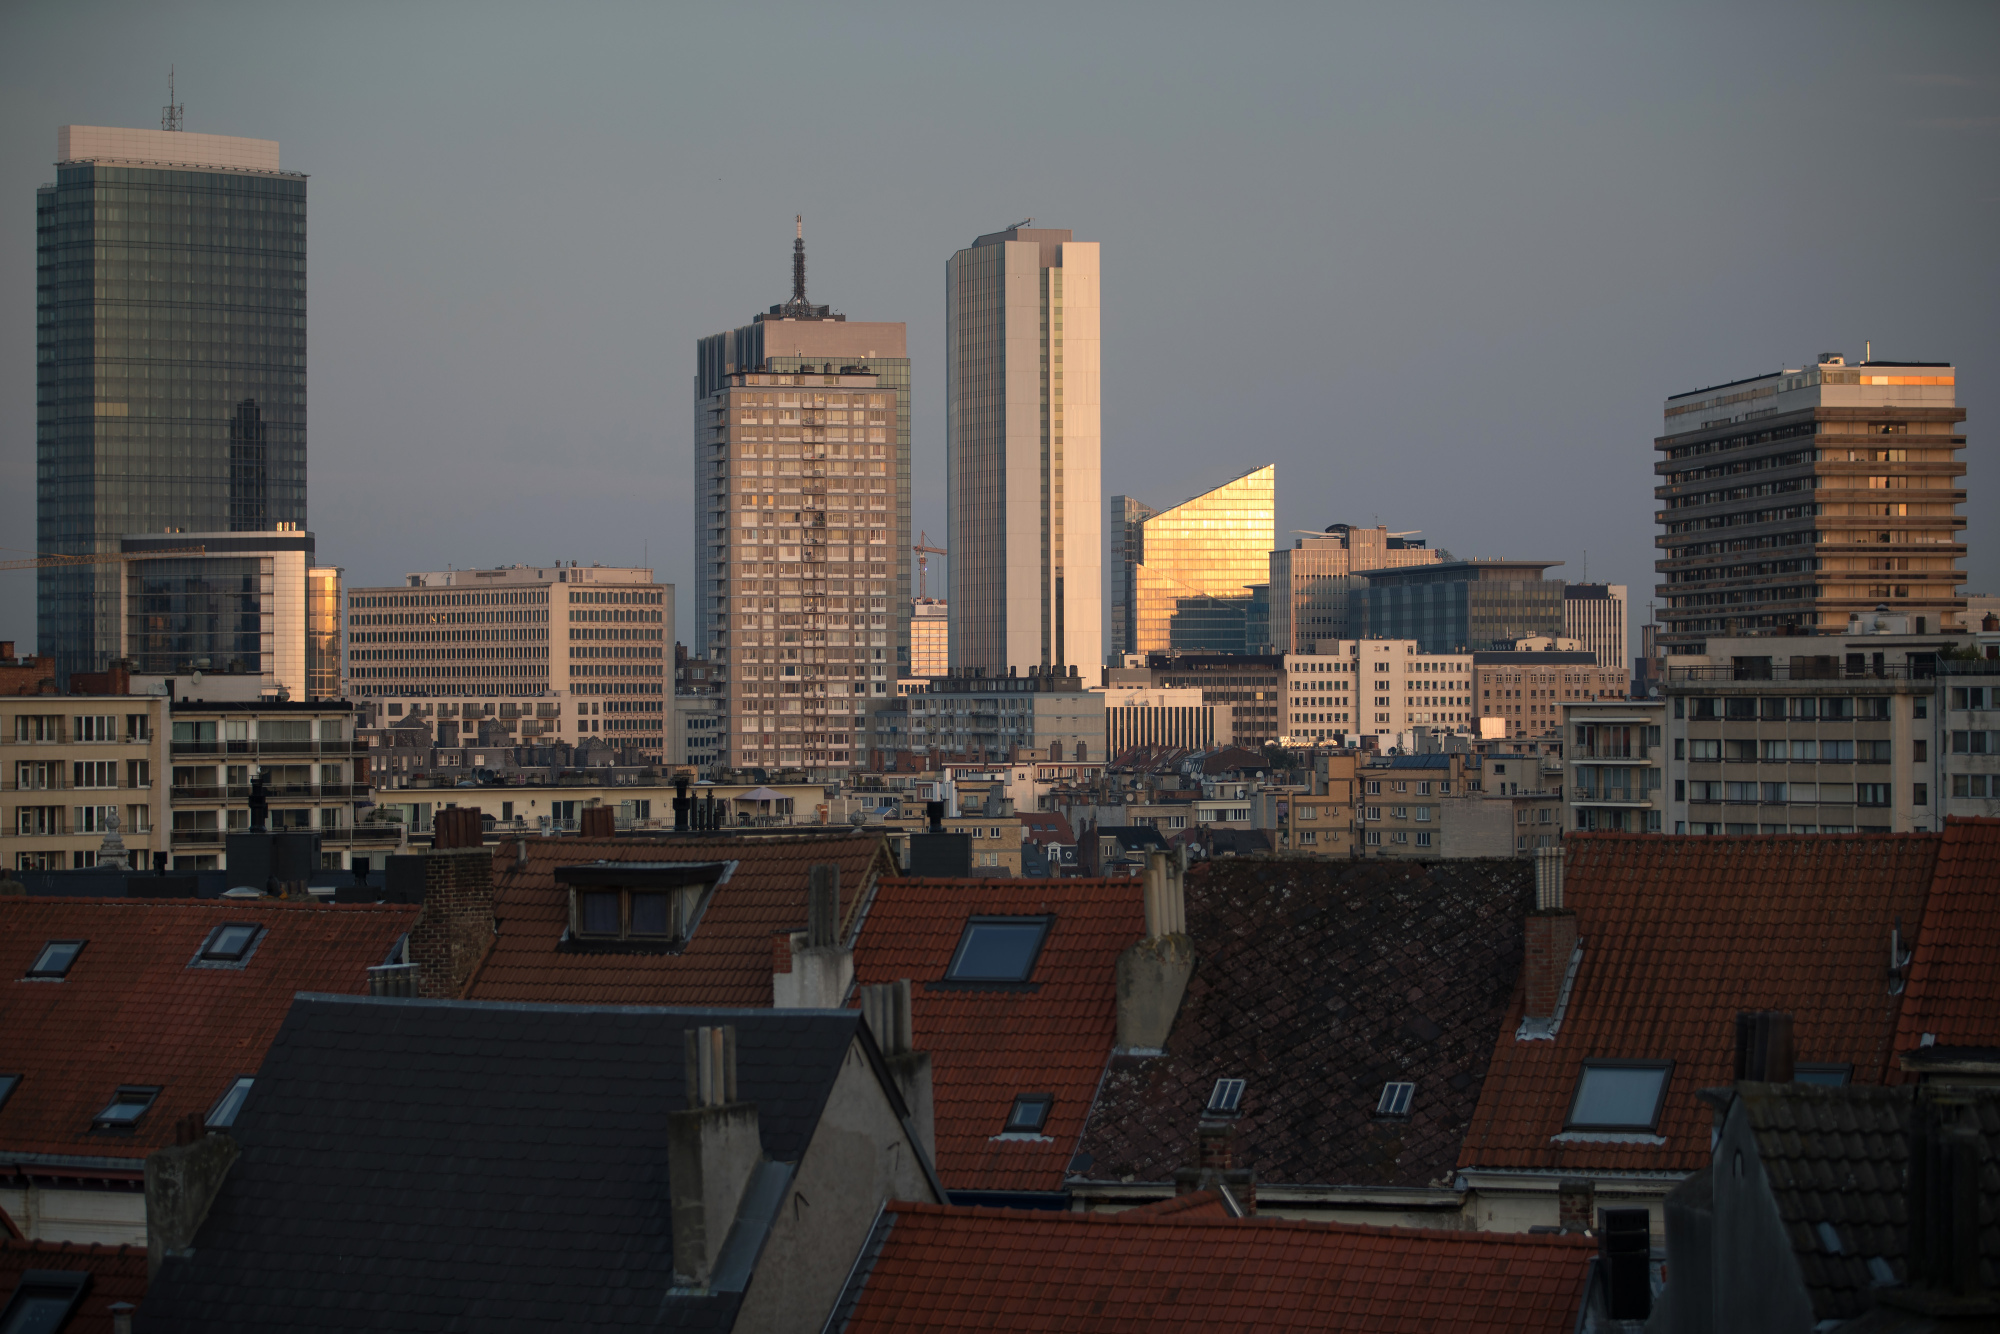 The business district in Brussels, Belgium.